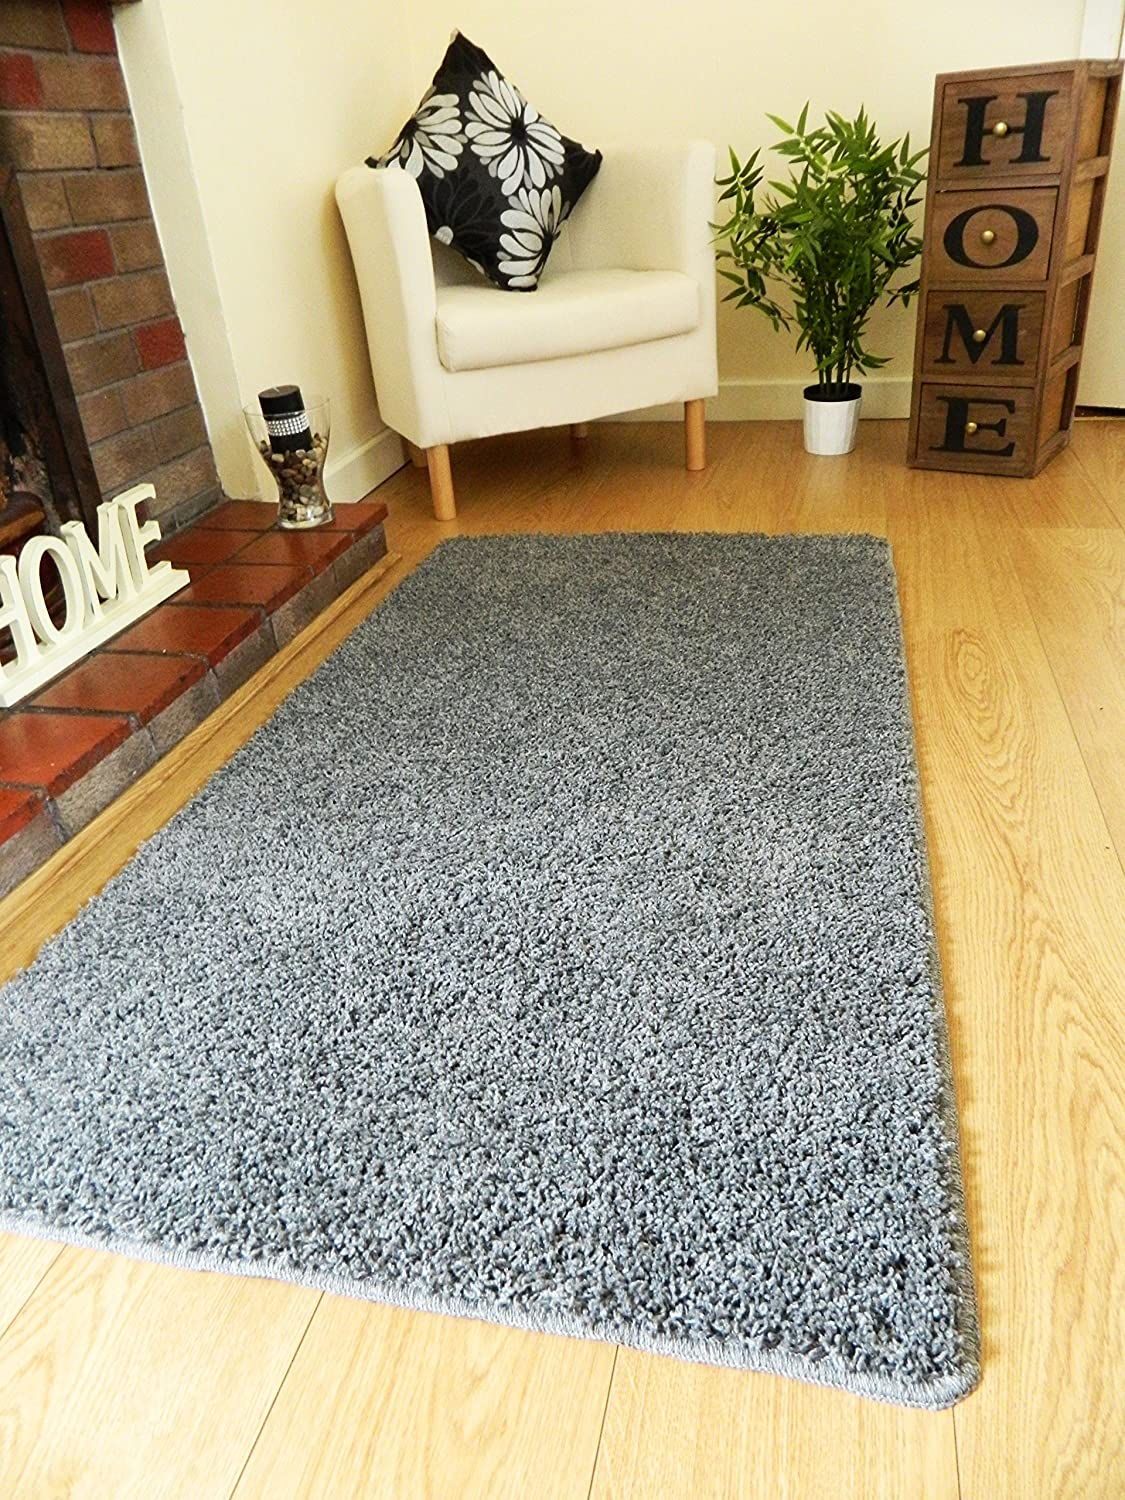 rug 80 x 150. grey machine washable thick soft shaggy rug. available in 4 sizes. (100cm diameter (circle)): amazon.co.uk: kitchen \u0026 home rug 80 x 150